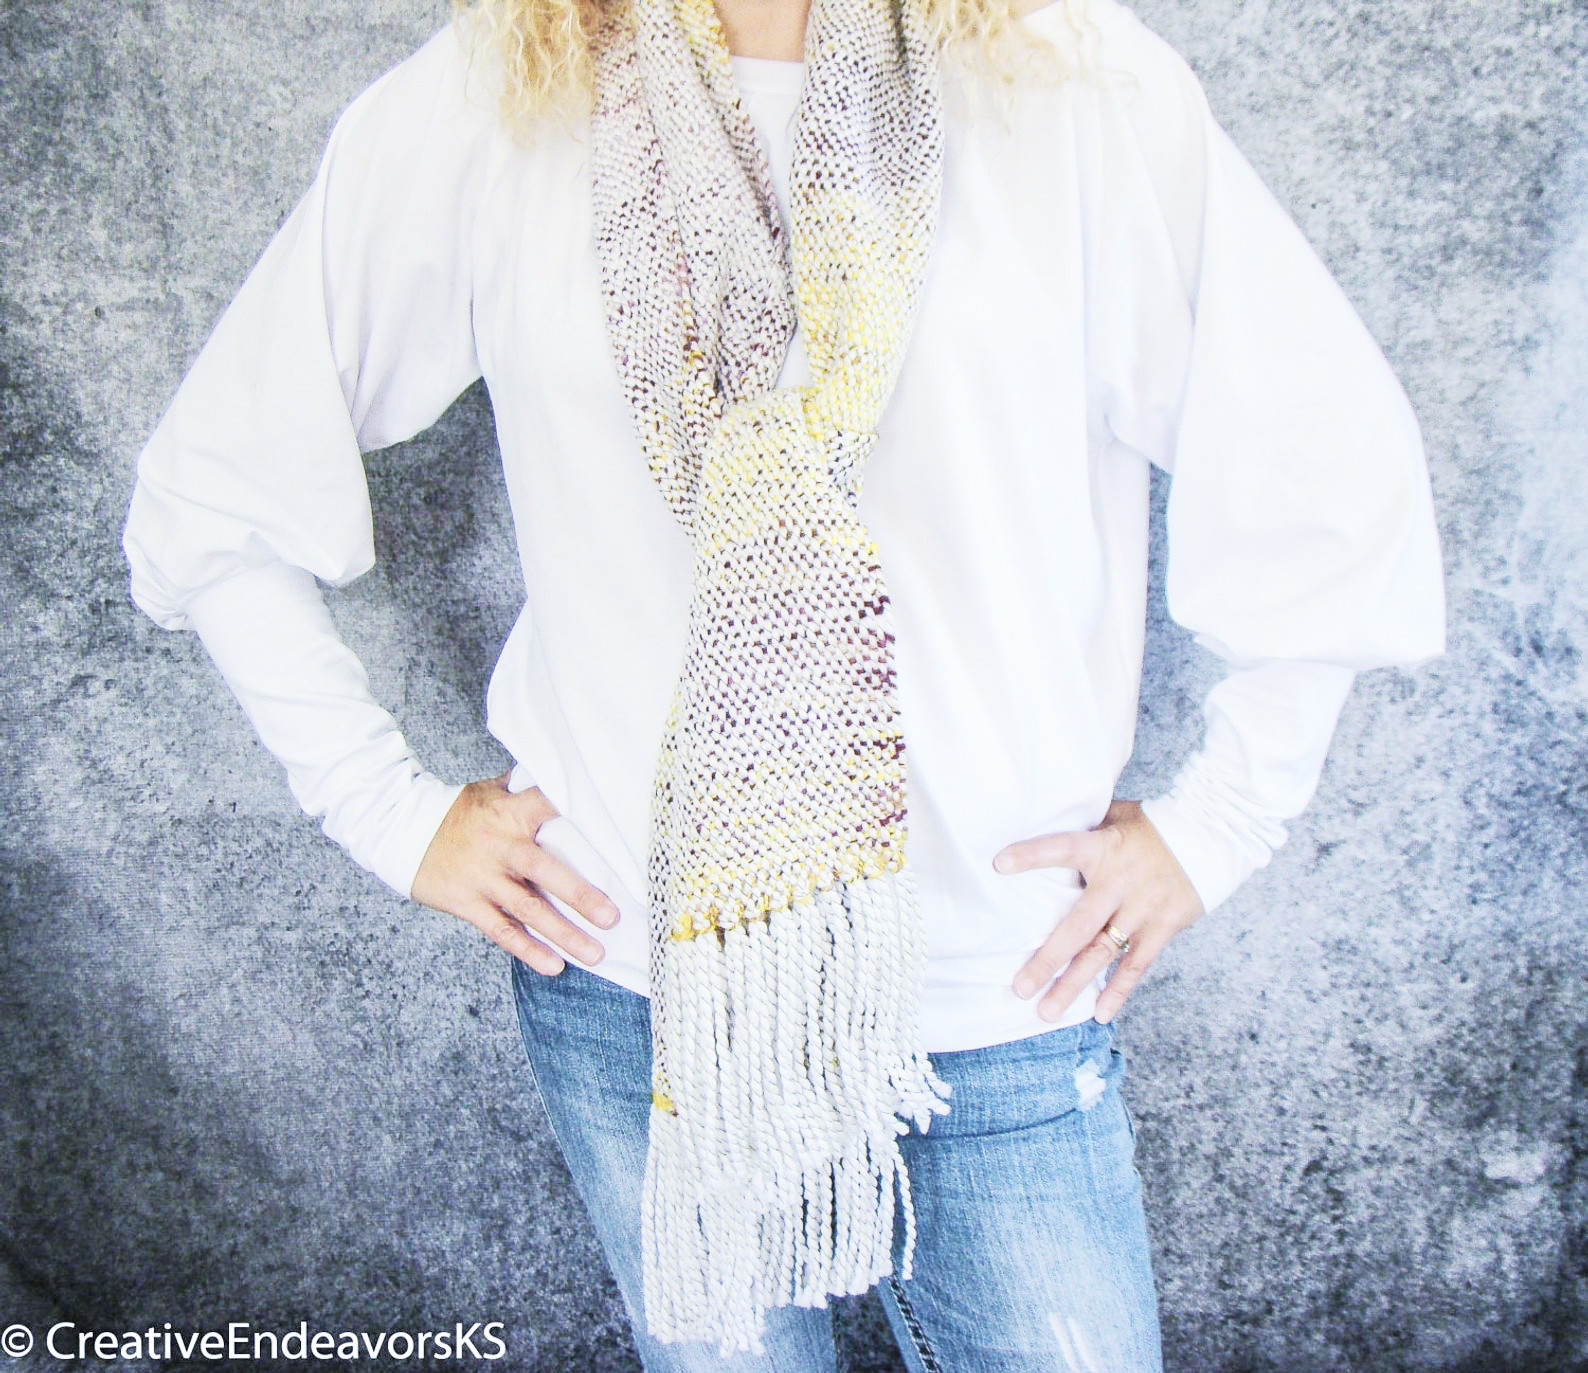 Vivid Handwoven Scarf by Kristina Smiley.jpg